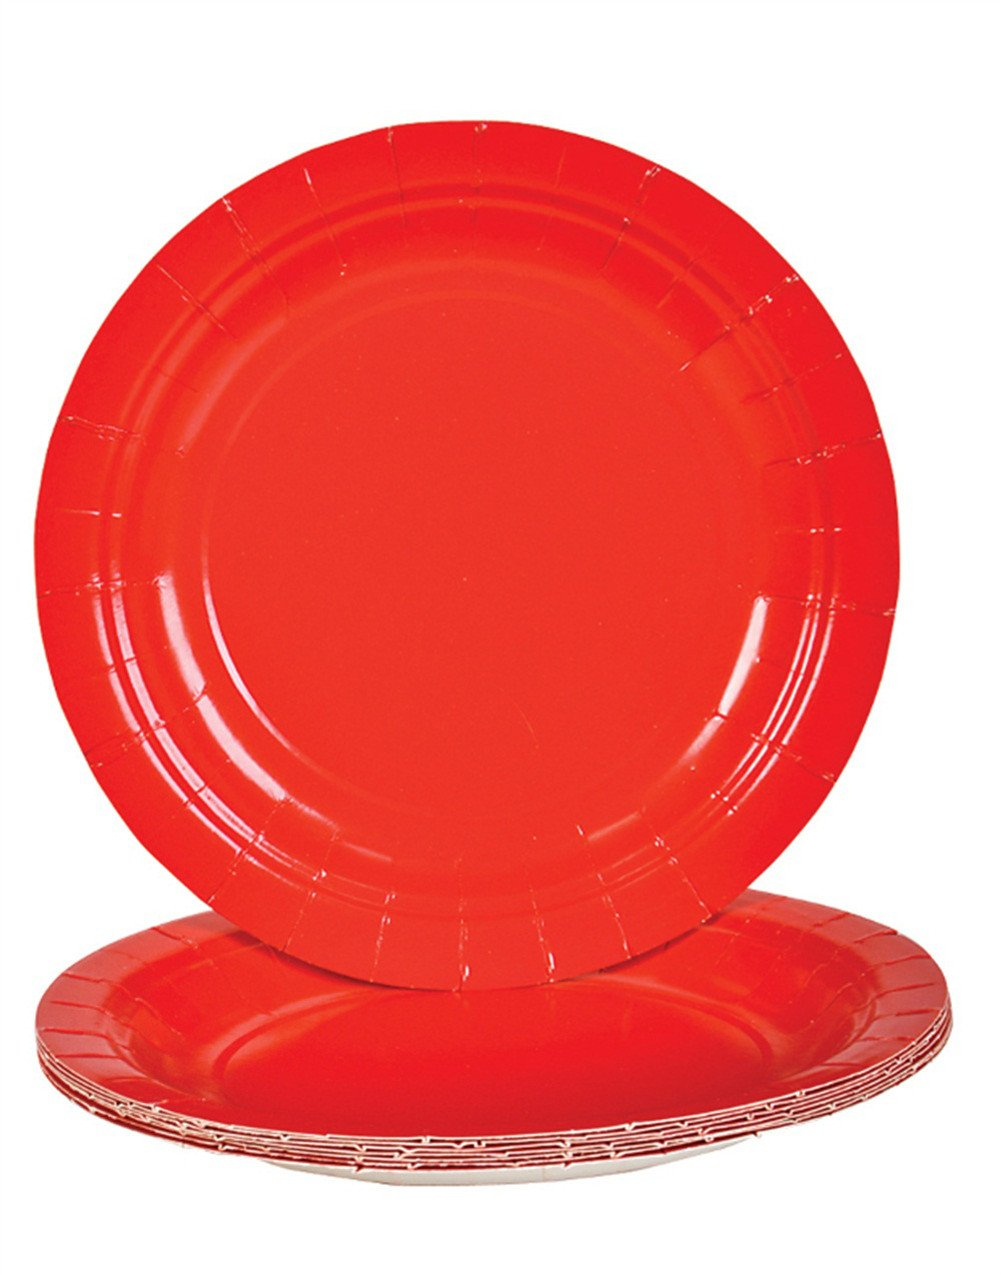 Red Dessert Paper Plates (25 pc) by Rhode Island Novelty (Image #1)